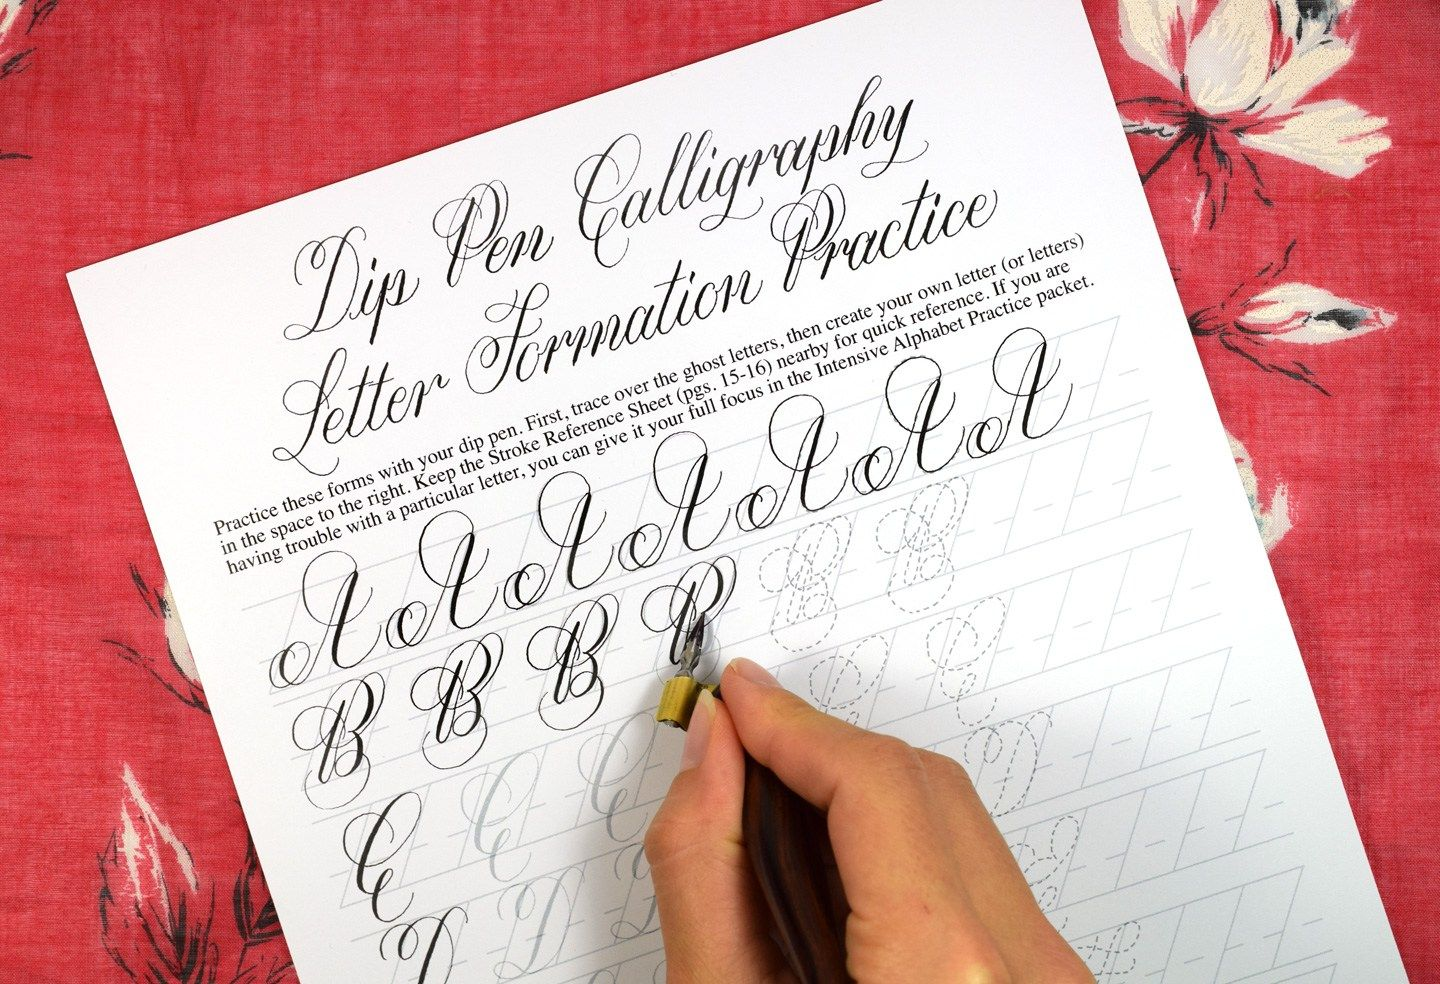 About Calligraphy Slant Lines